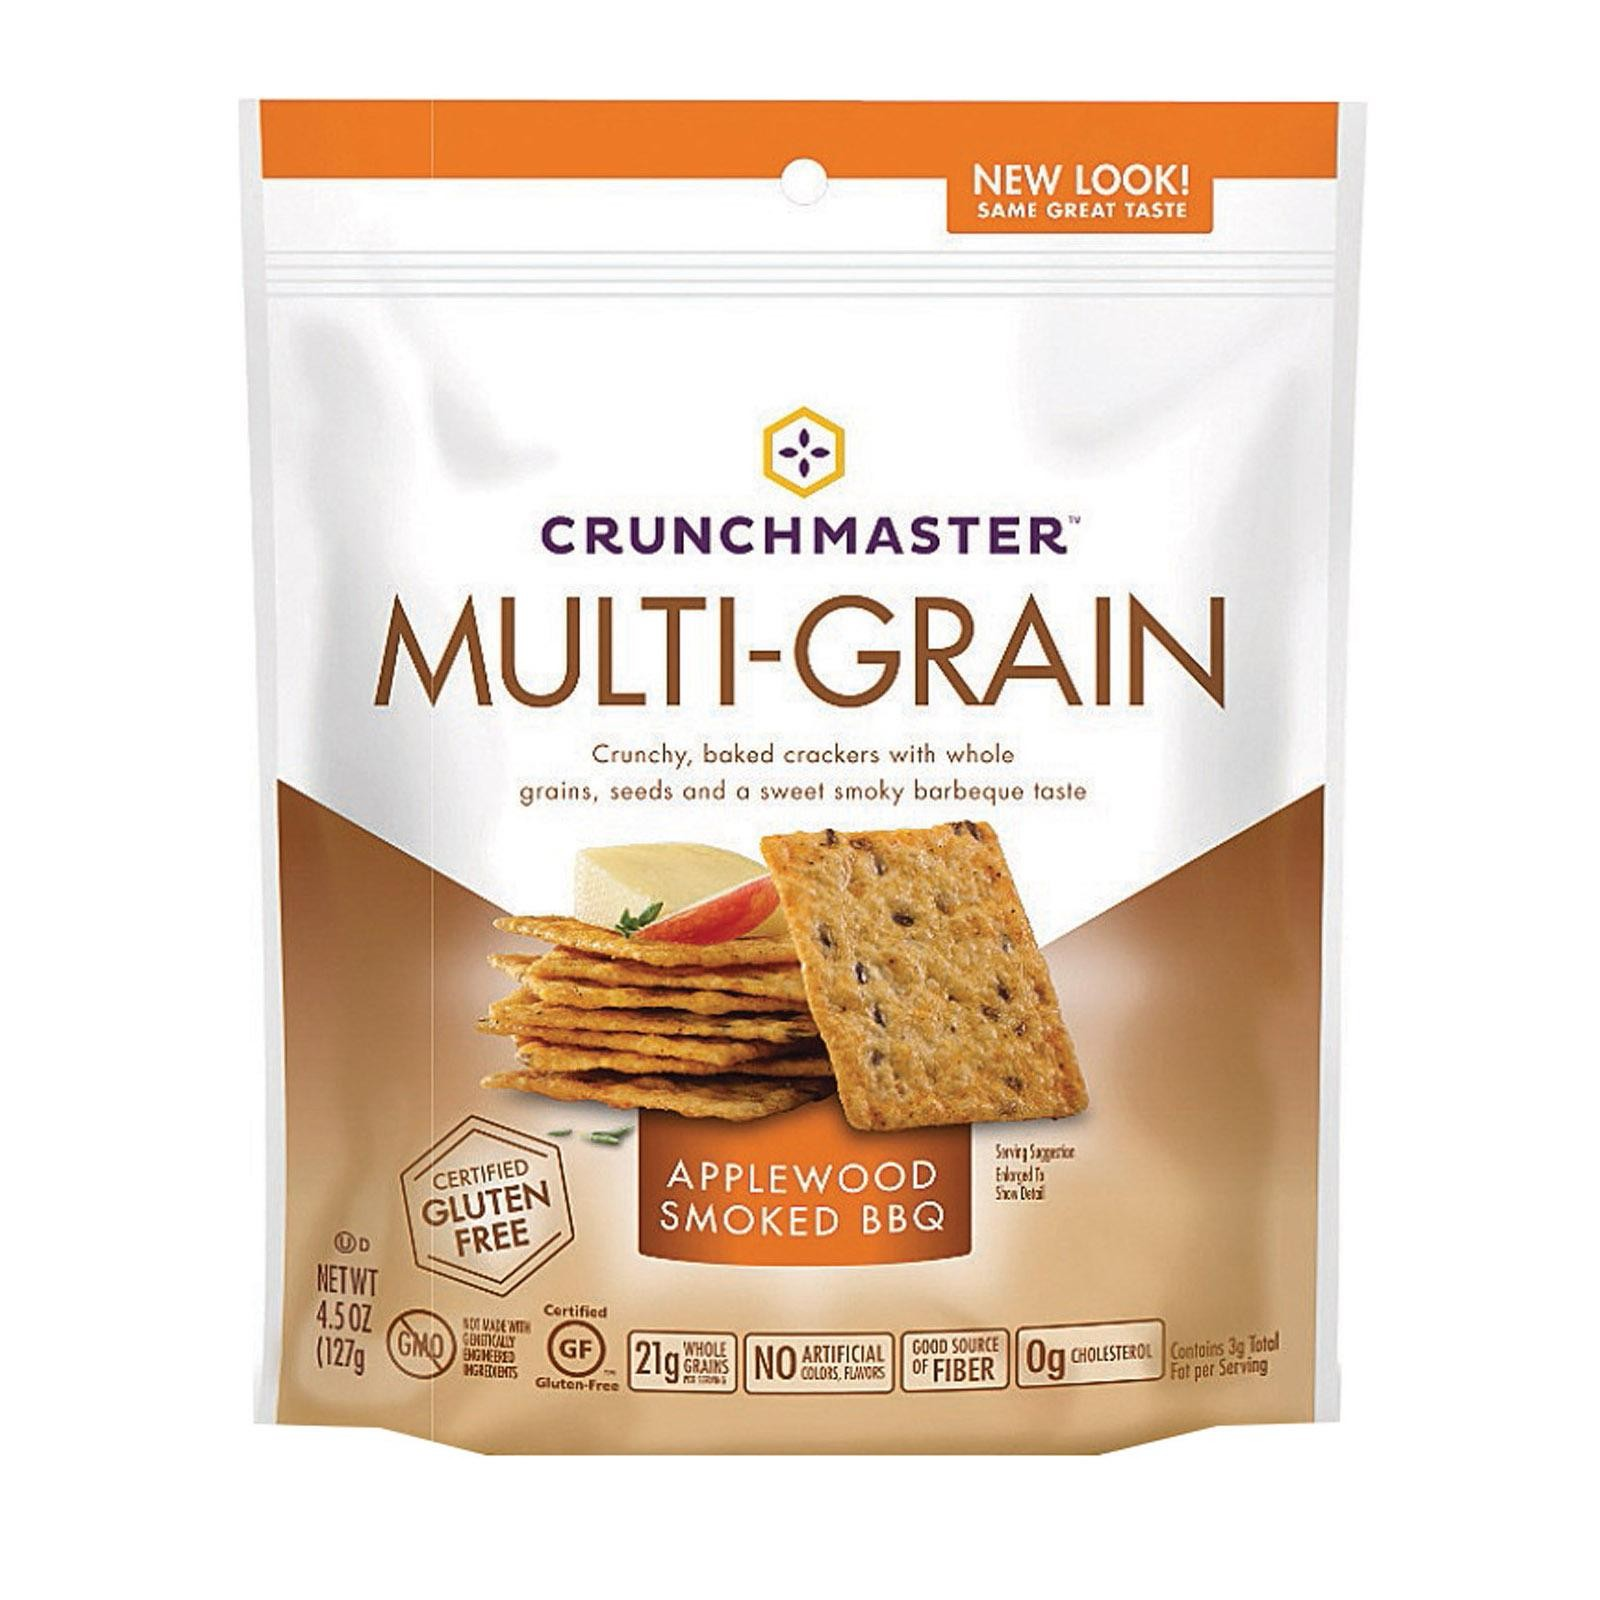 Crunchmaster Multi-grain Crackers - Applewood Smoked Bbq - pack of 12 - 4.5 Oz